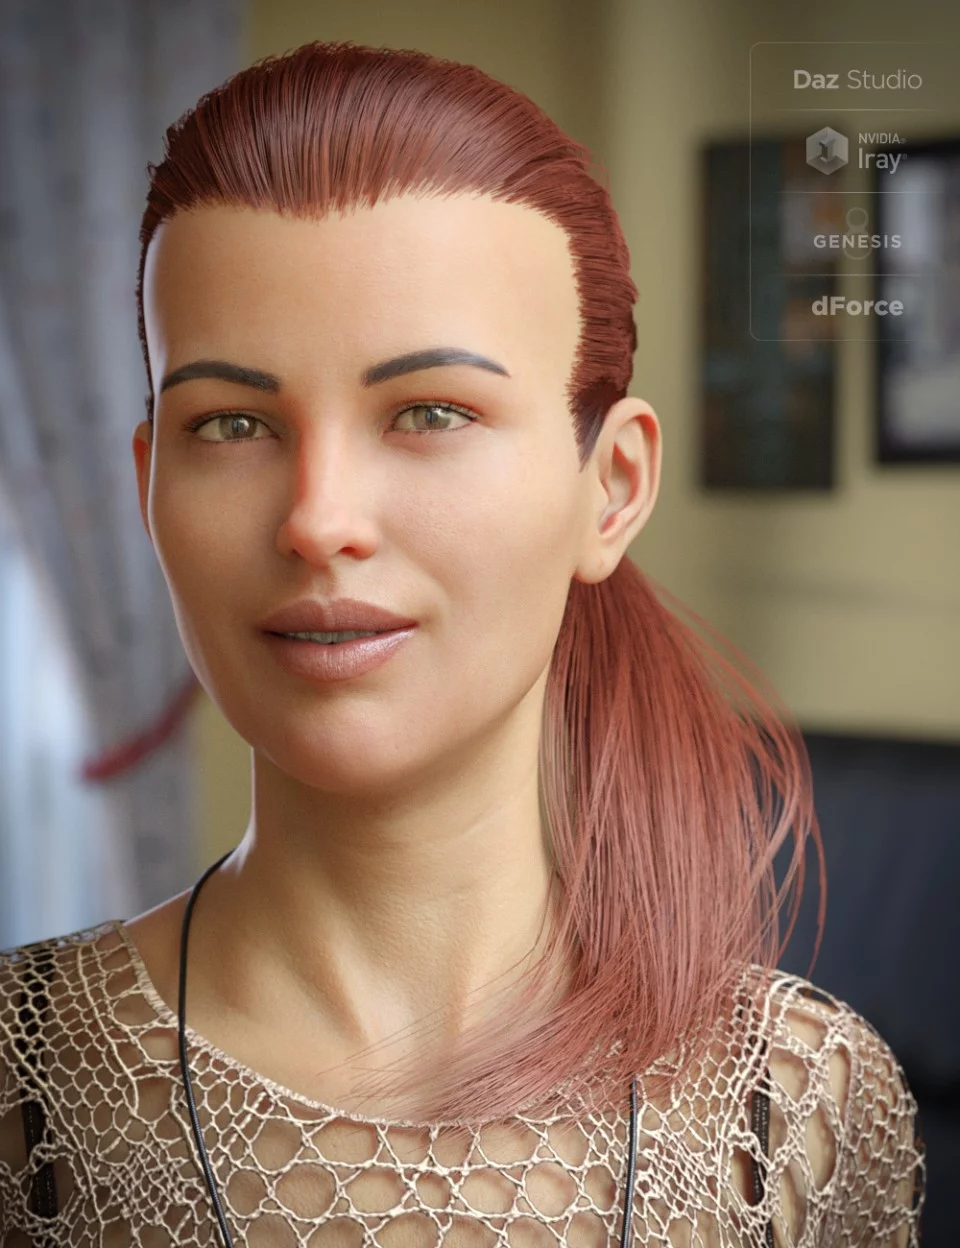 dForce Hair Elyssa Ponytail for Genesis 8 Female(s)